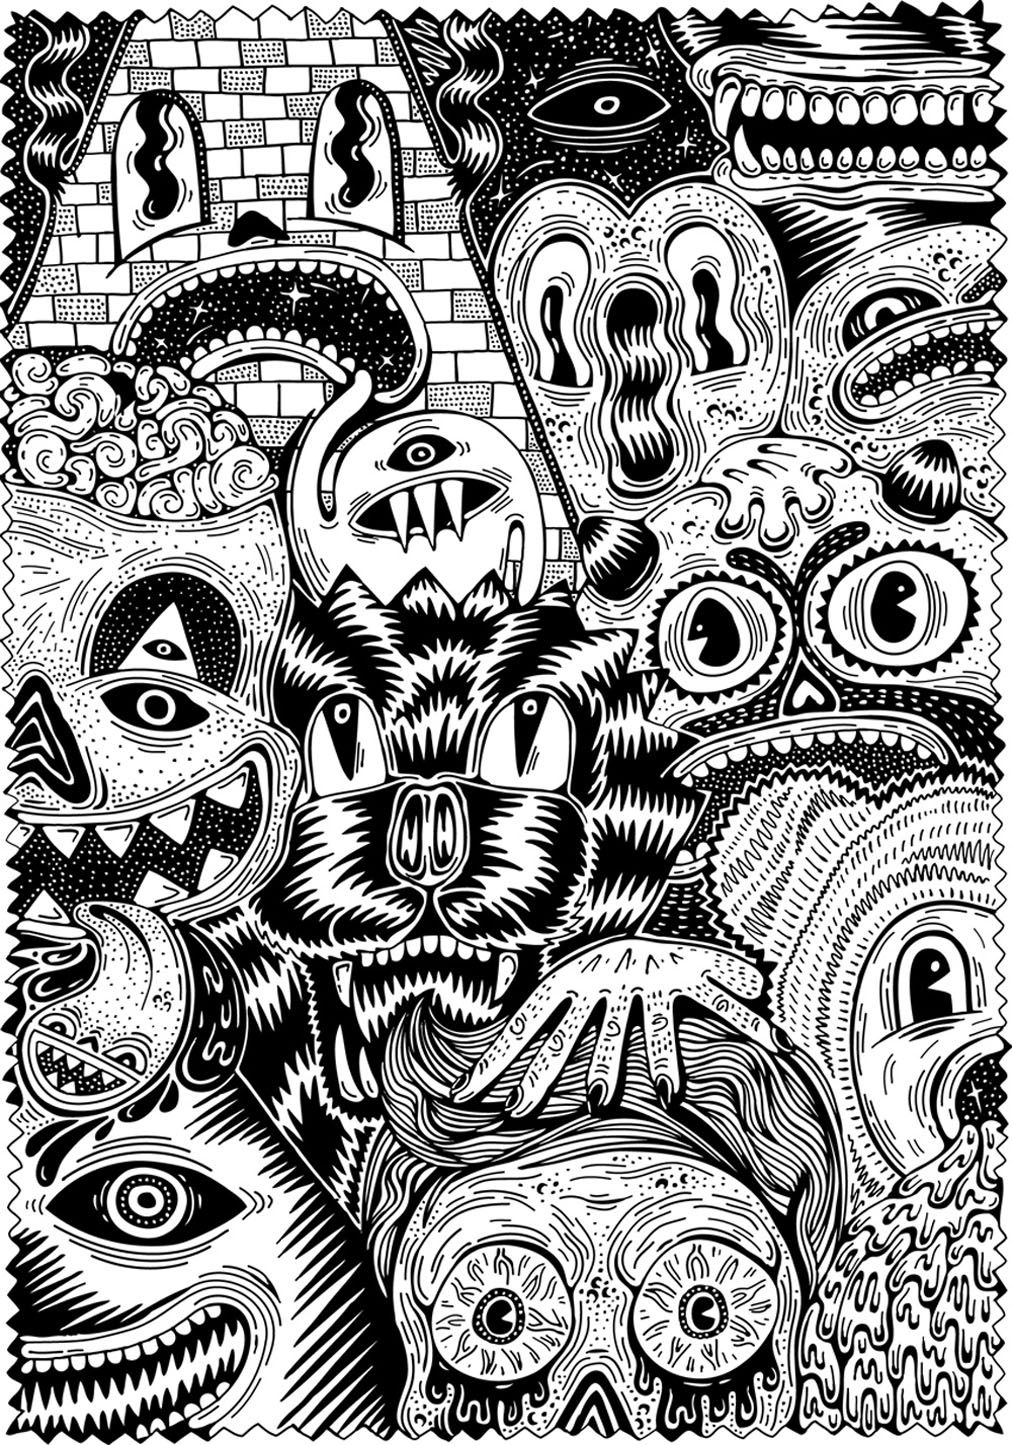 Free Coloring Page Warning Scary Perfect For Halloween But Yes Adults Can Color It Too